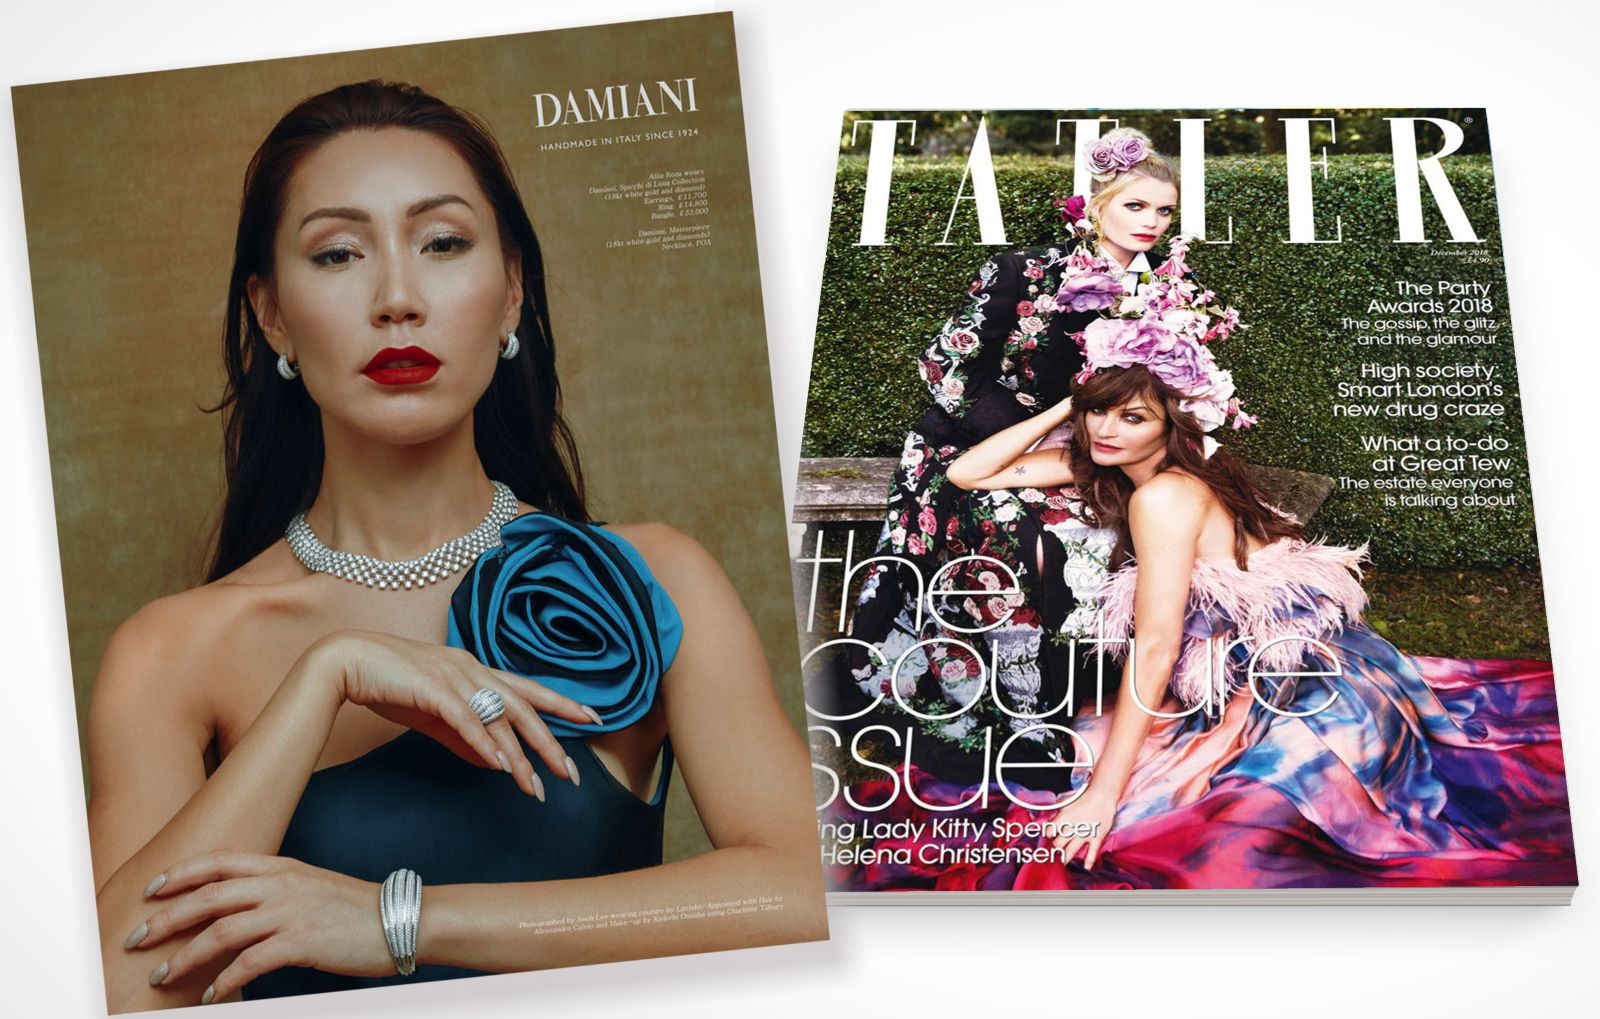 Amazing collaboration with Damiani and Lavishly Appointed